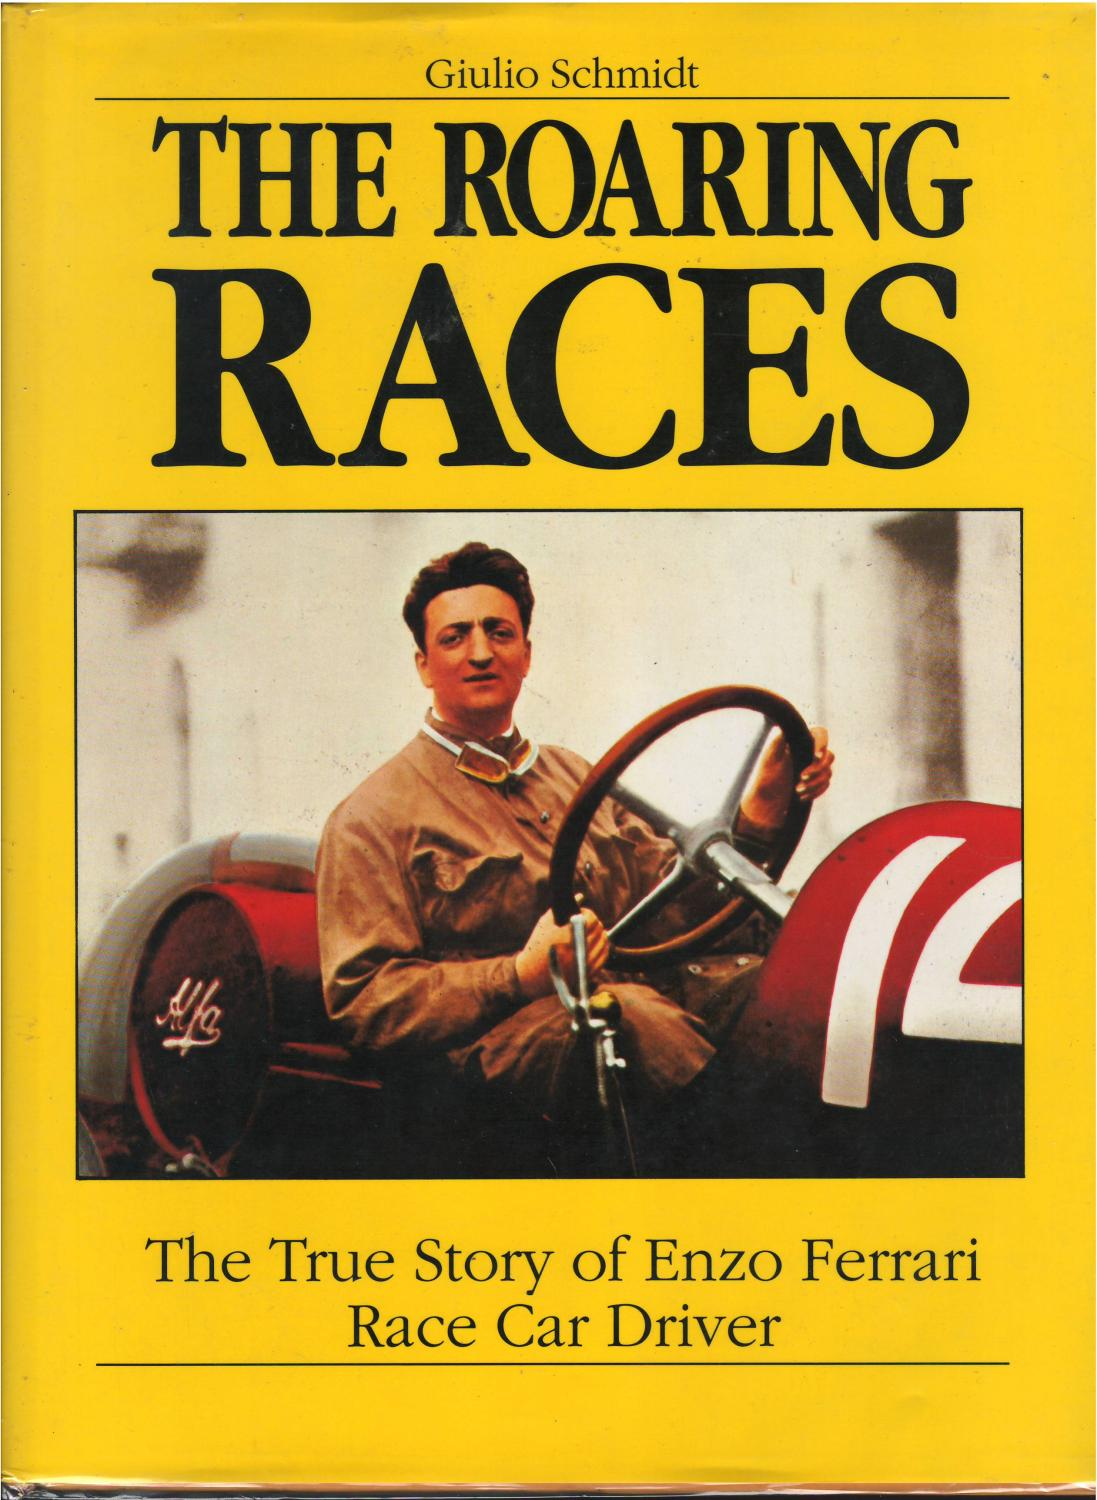 The Roaring Races The True Story Of Enzo Ferrari Race Car Driver By Giulio Schmidt Fine Hard Cover 1988 Signed By Translator Culpepper Books